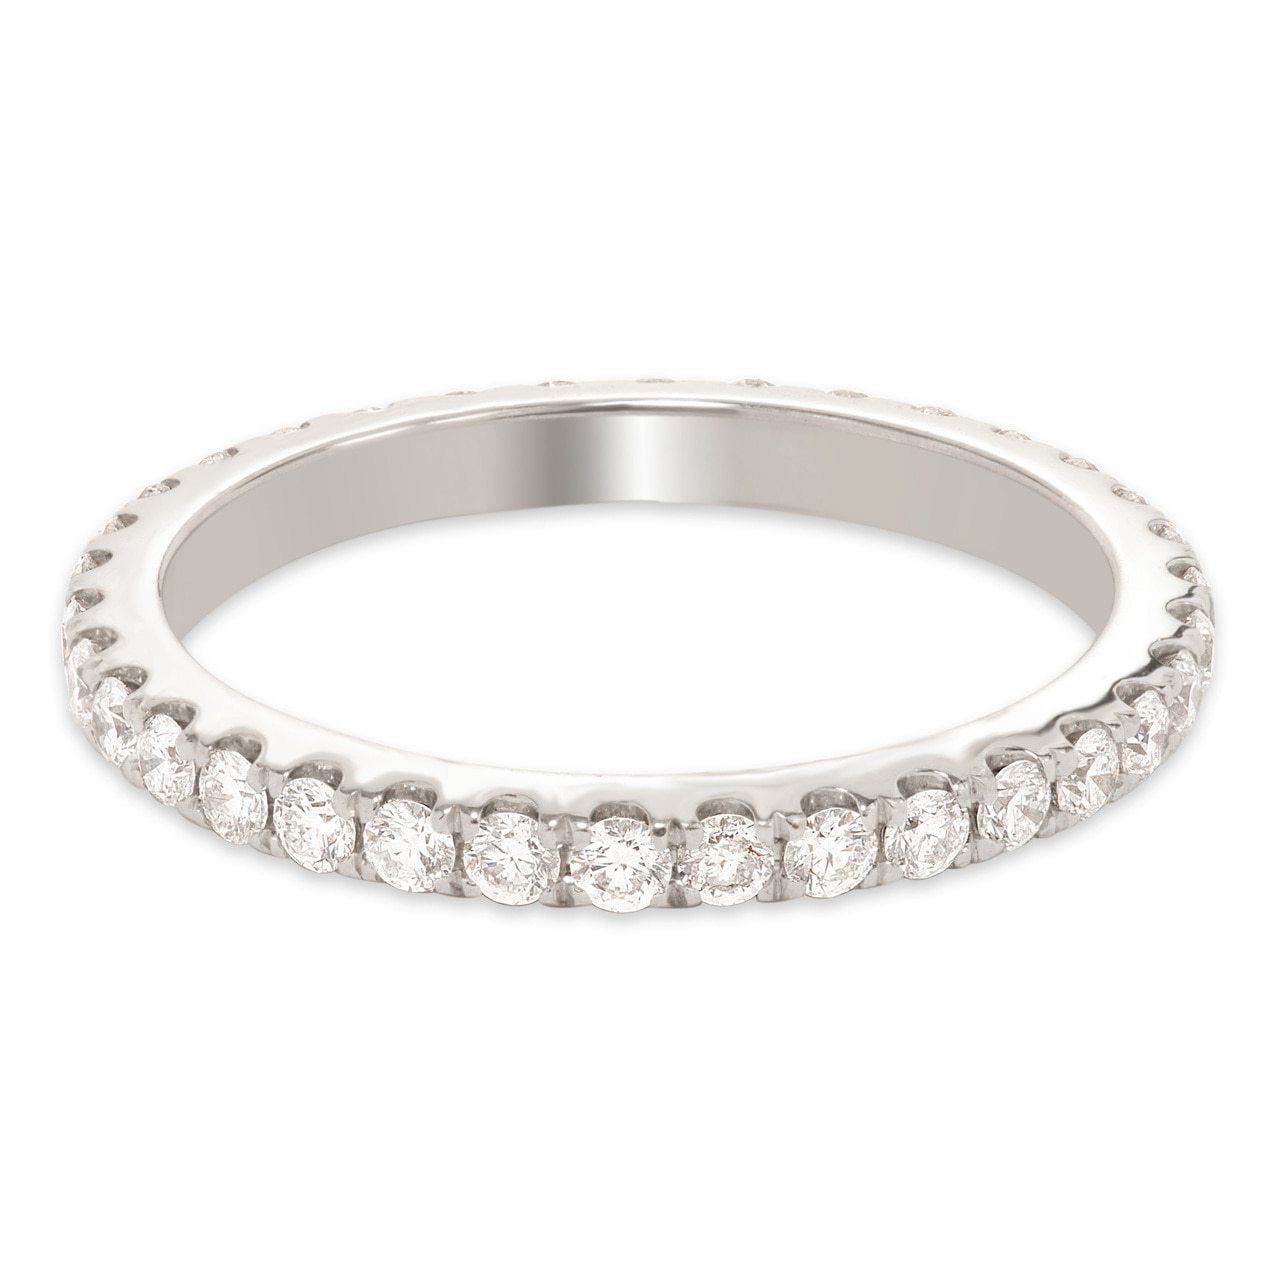 White Gold Shared Prong Round Diamond Eternity Band